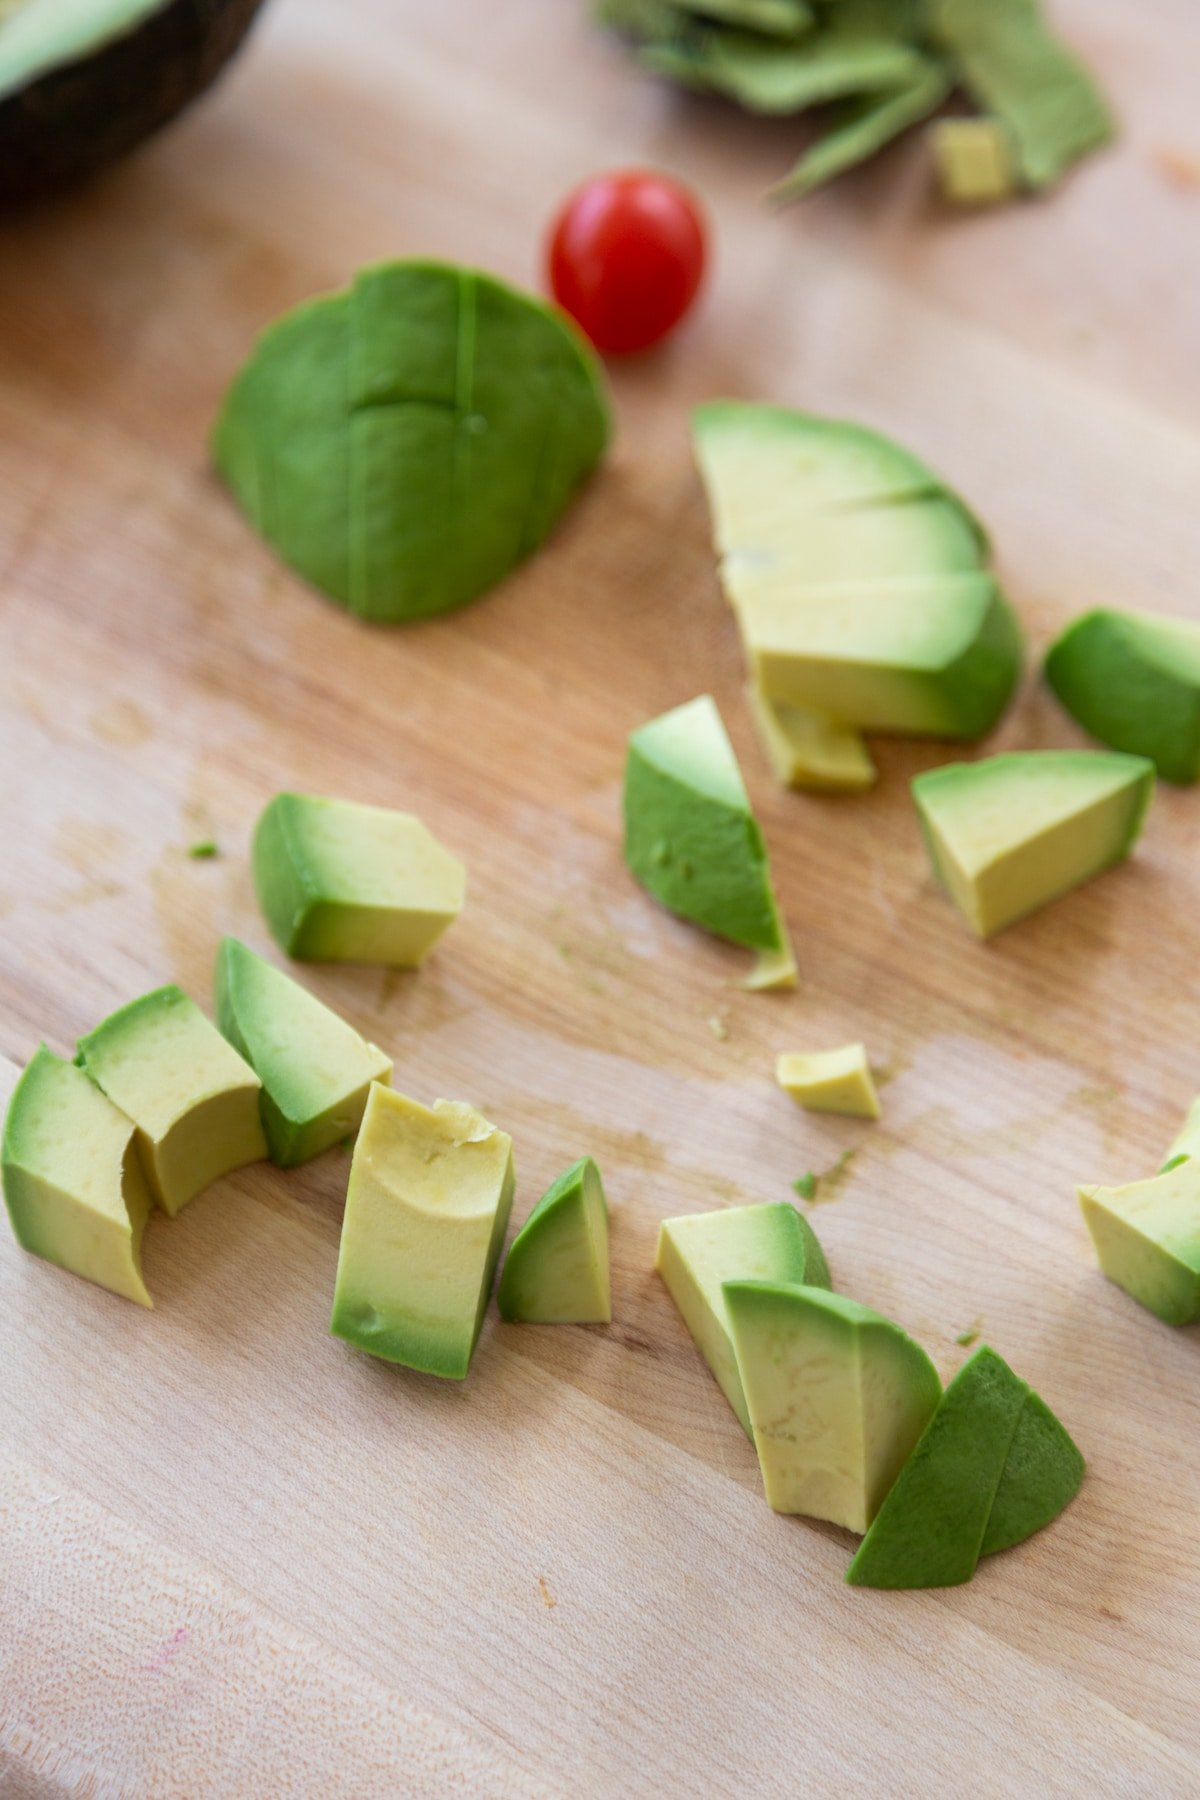 Cubed avocado on a wooden cutting board.